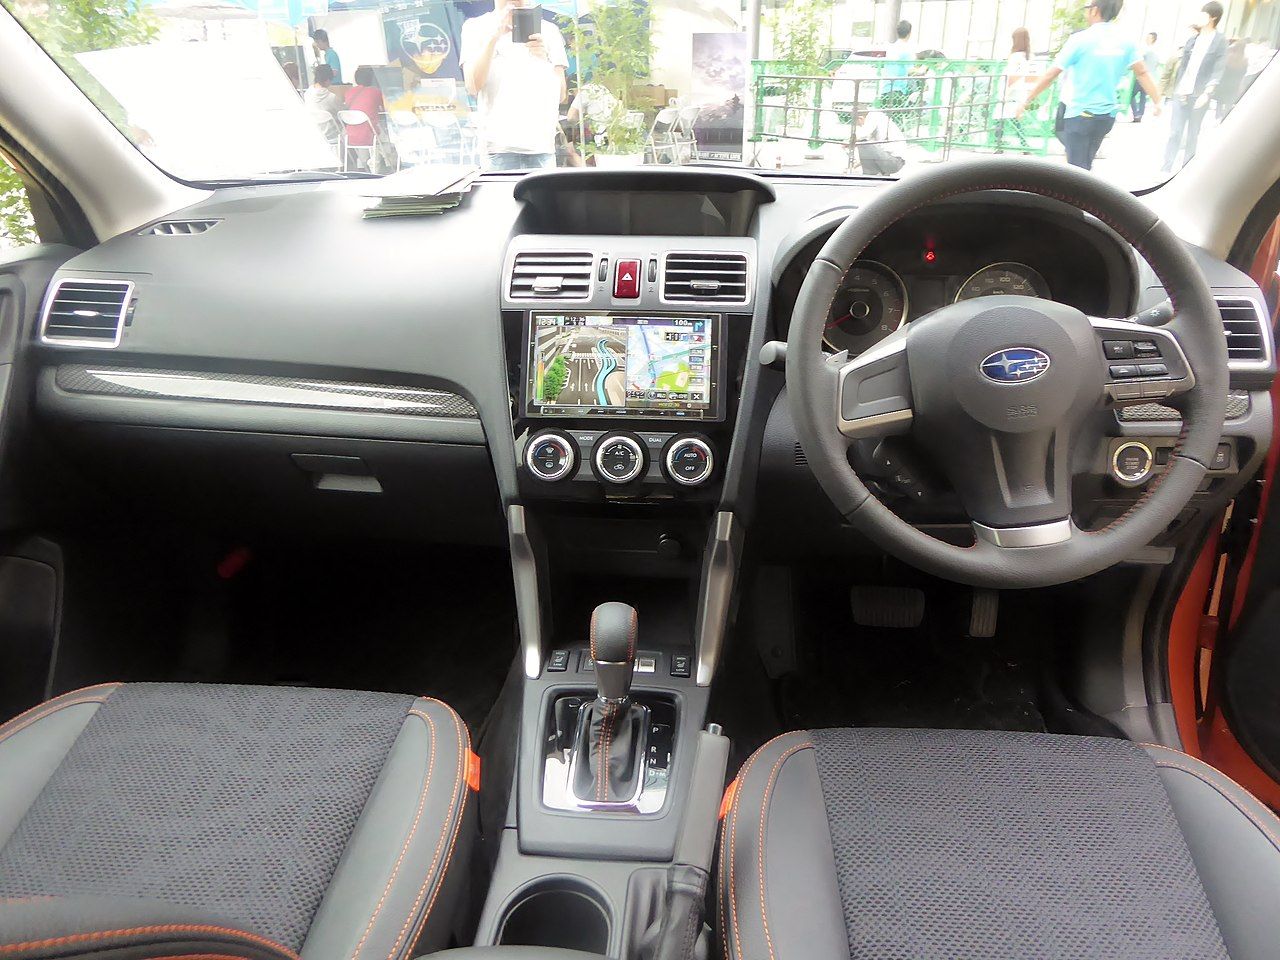 filesubaru forester xbreak sj interiorjpg wikimedia